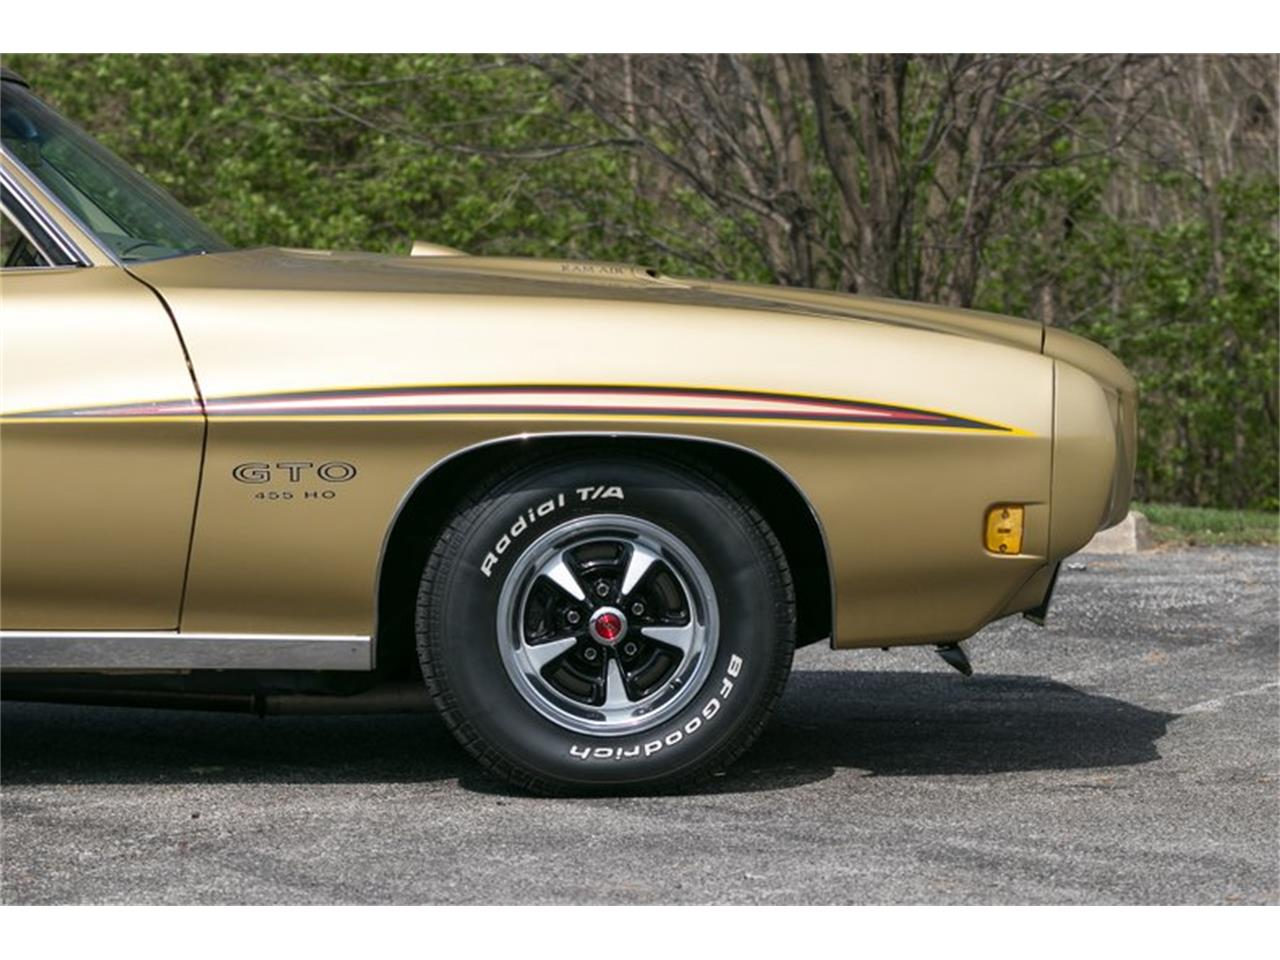 Large Picture of '70 GTO located in Missouri Offered by Fast Lane Classic Cars Inc. - QKPX